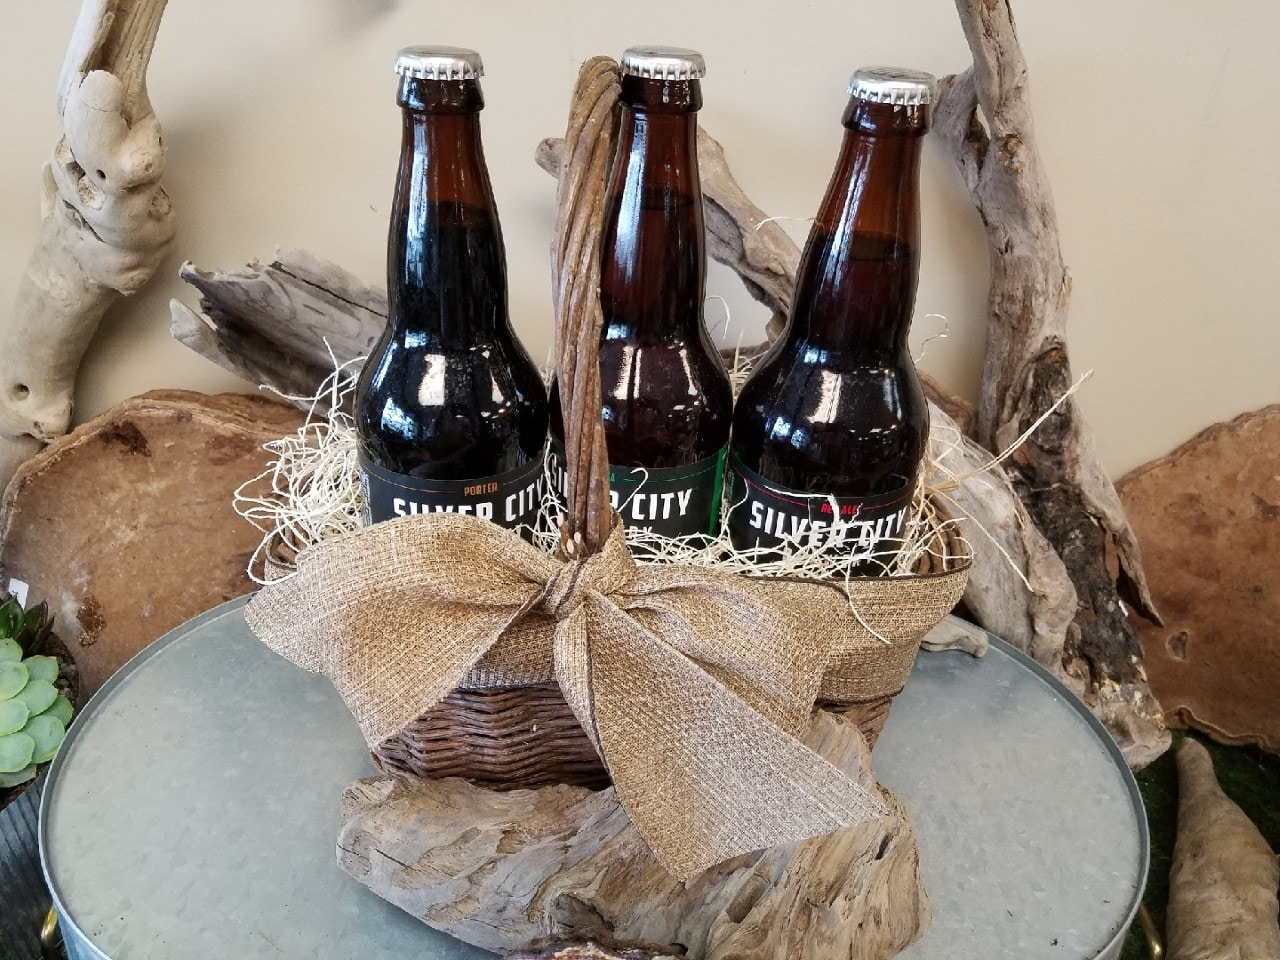 Silver City Beer Basket